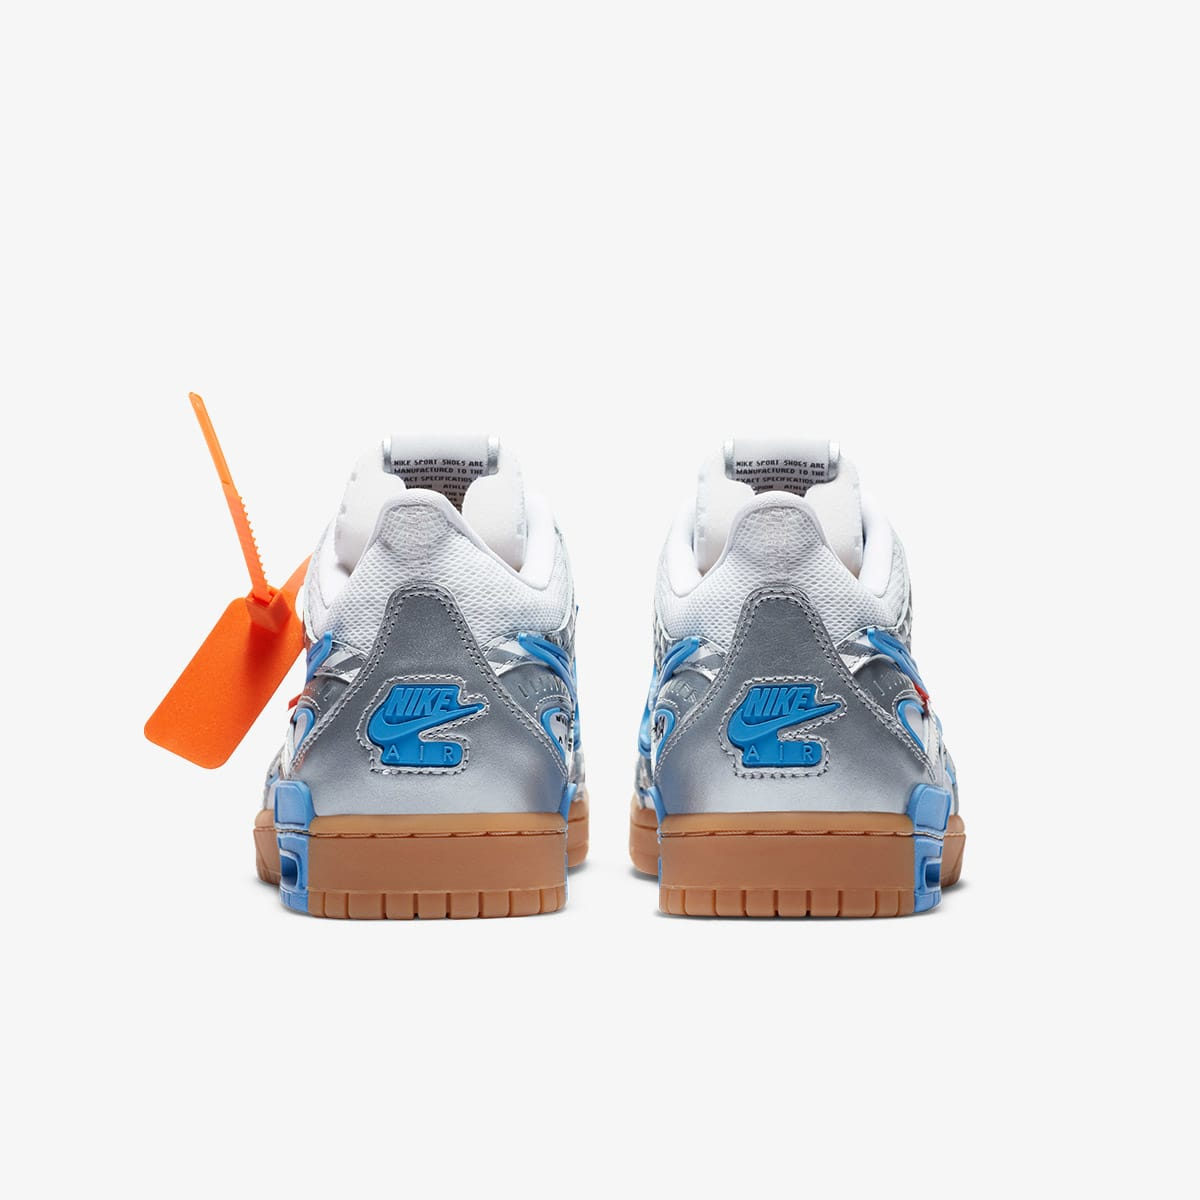 Nike x Off-White Rubber Dunk - CU6015-100